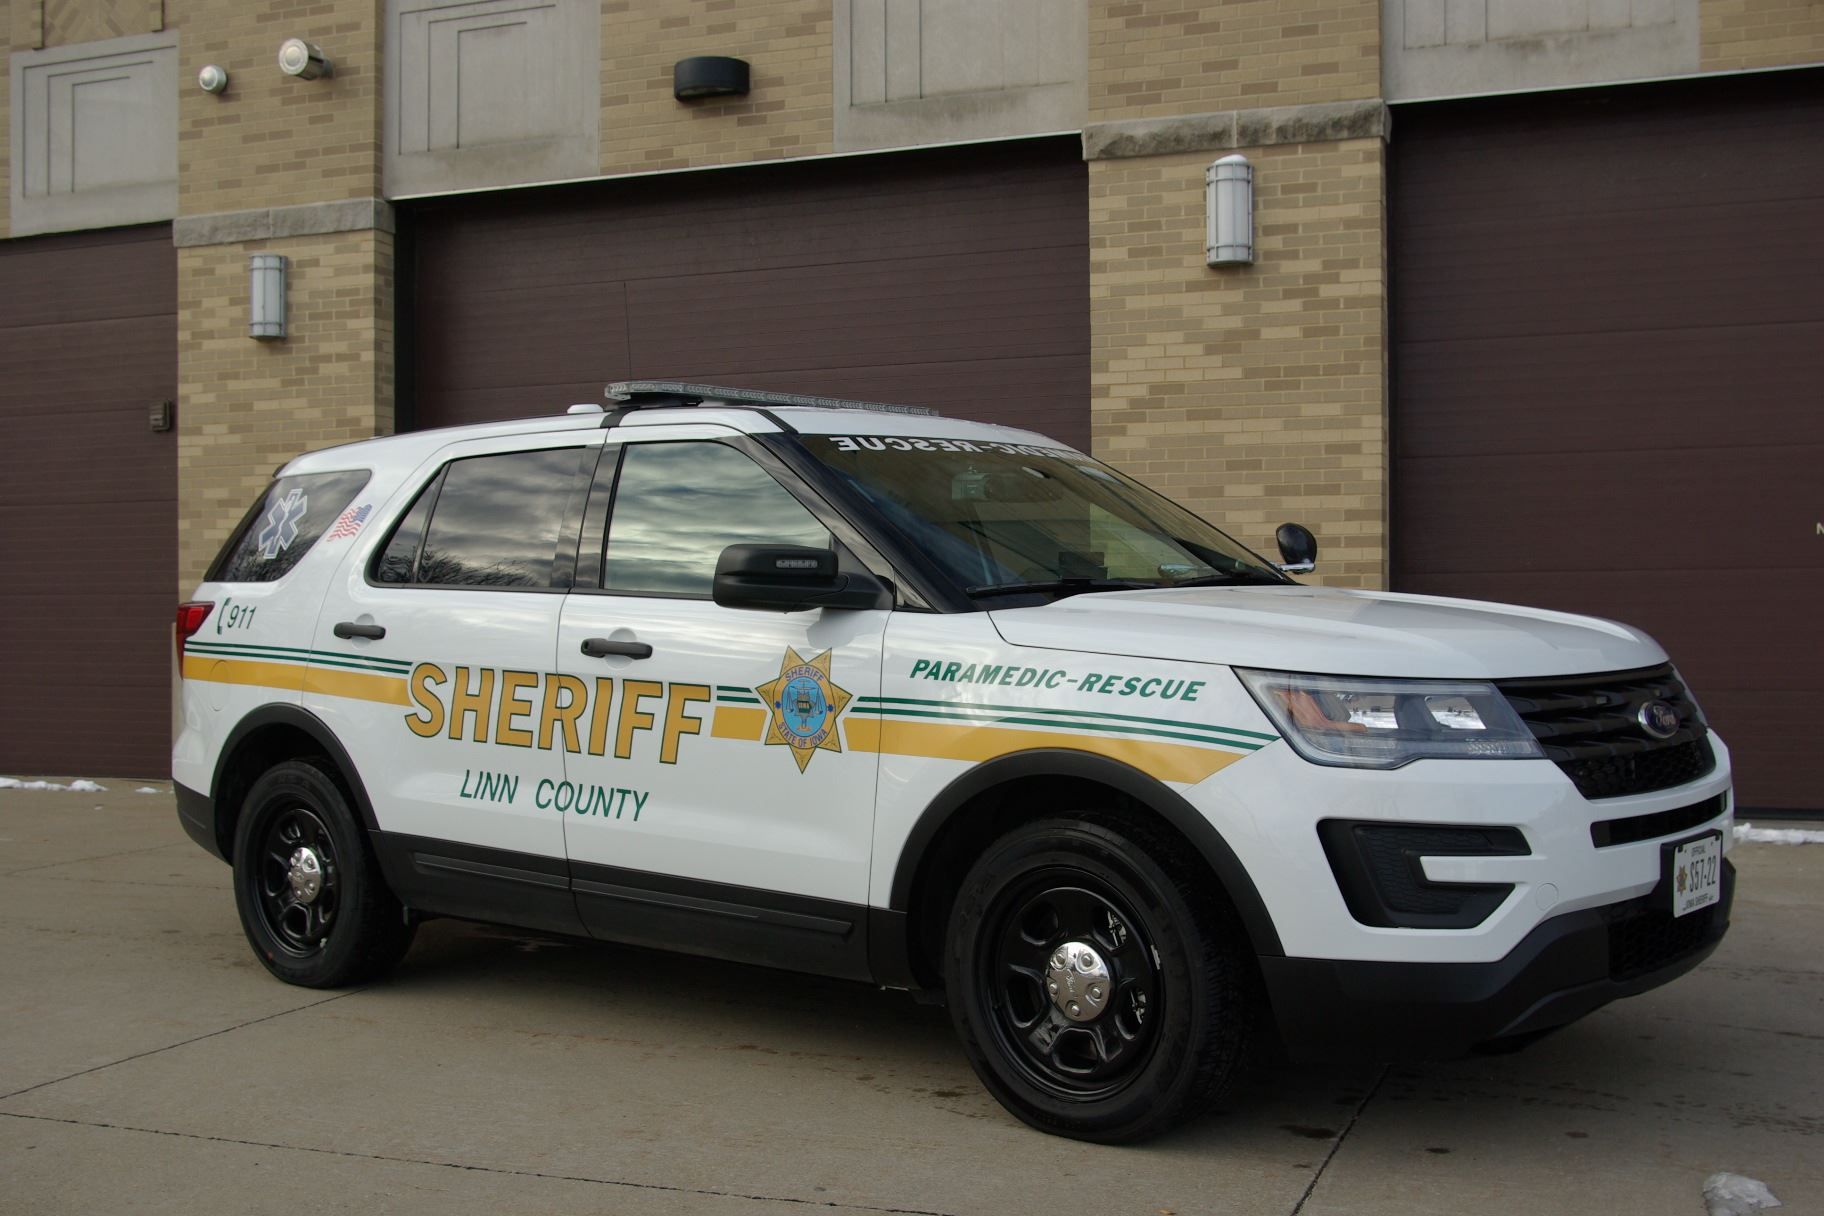 Linn County Sheriff's Office Rescue 57 SUV